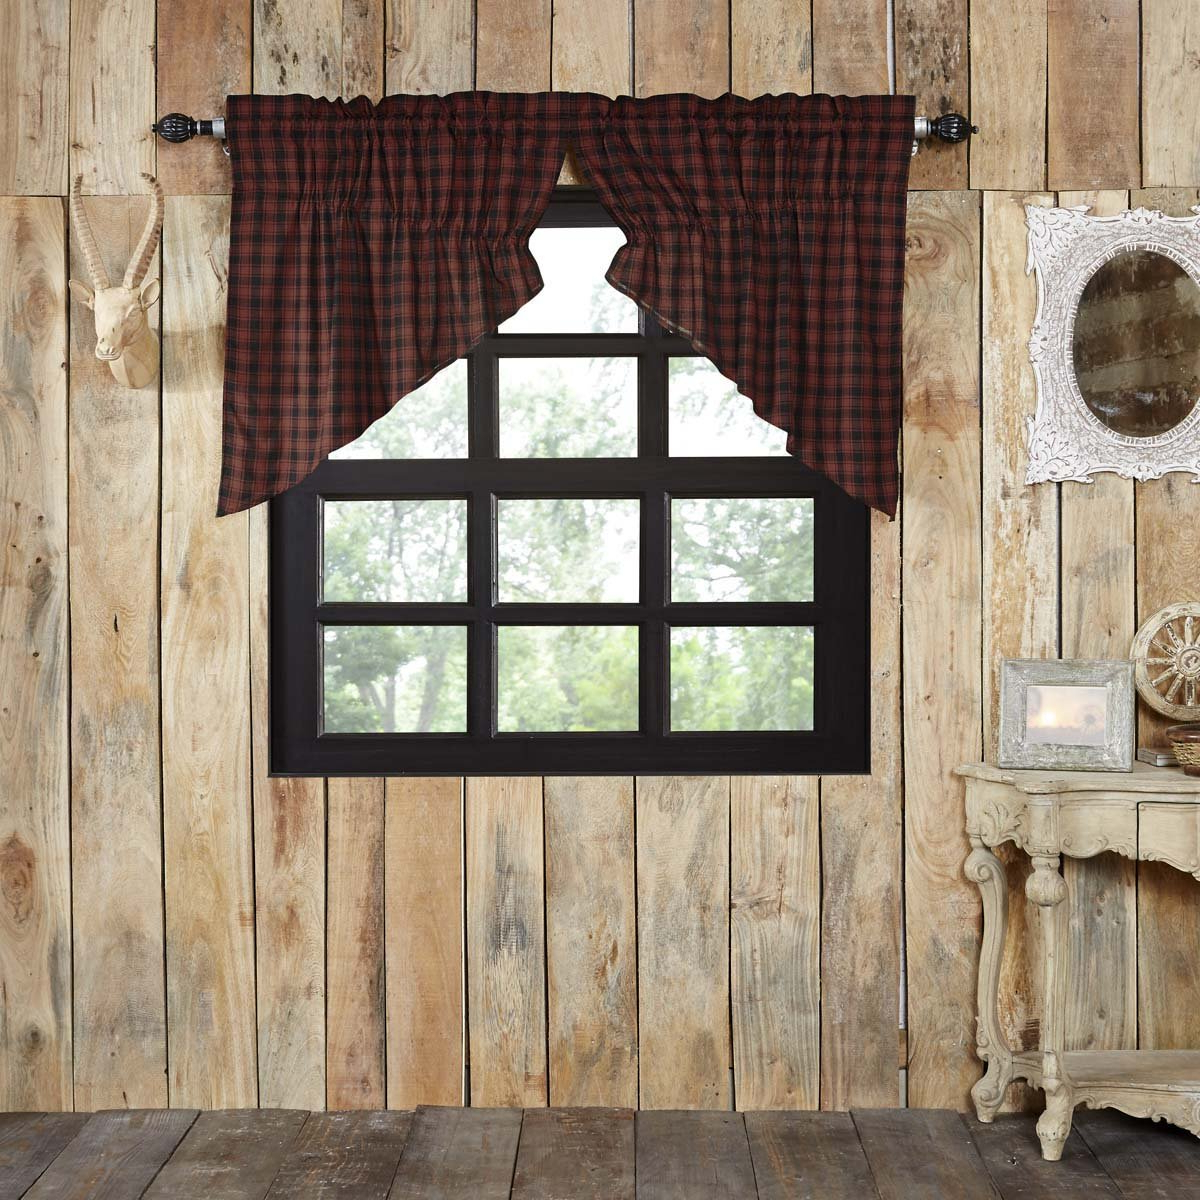 Fashionable Red Rustic Kitchen Curtains Throughout Chili Pepper Red Rustic & Lodge Kitchen Curtains Shasta (View 5 of 20)